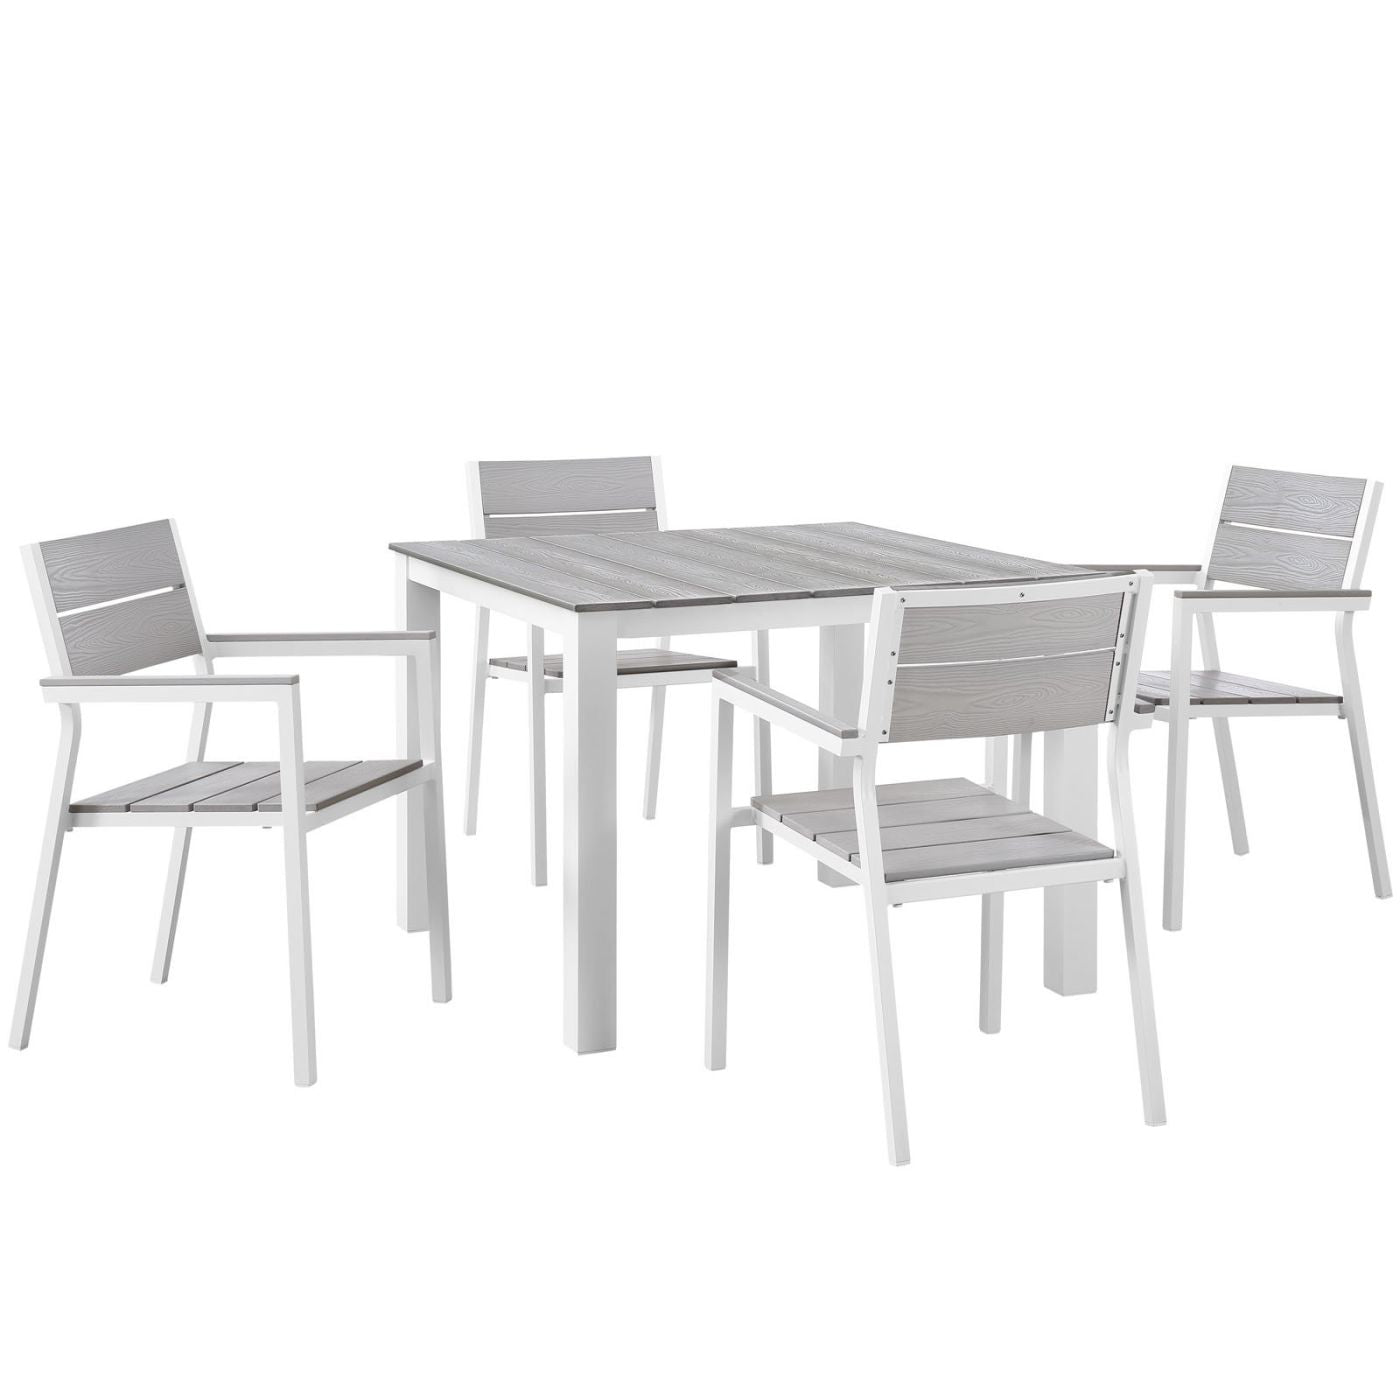 Modway Outdoor Dining Sets On Sale Eei 1745 Whi Lgr Set Maine Modern 5 Piece Outdoor Patio Dining Set Solid Light Gray Wood Only Only 802 55 At Contemporary Furniture Warehouse